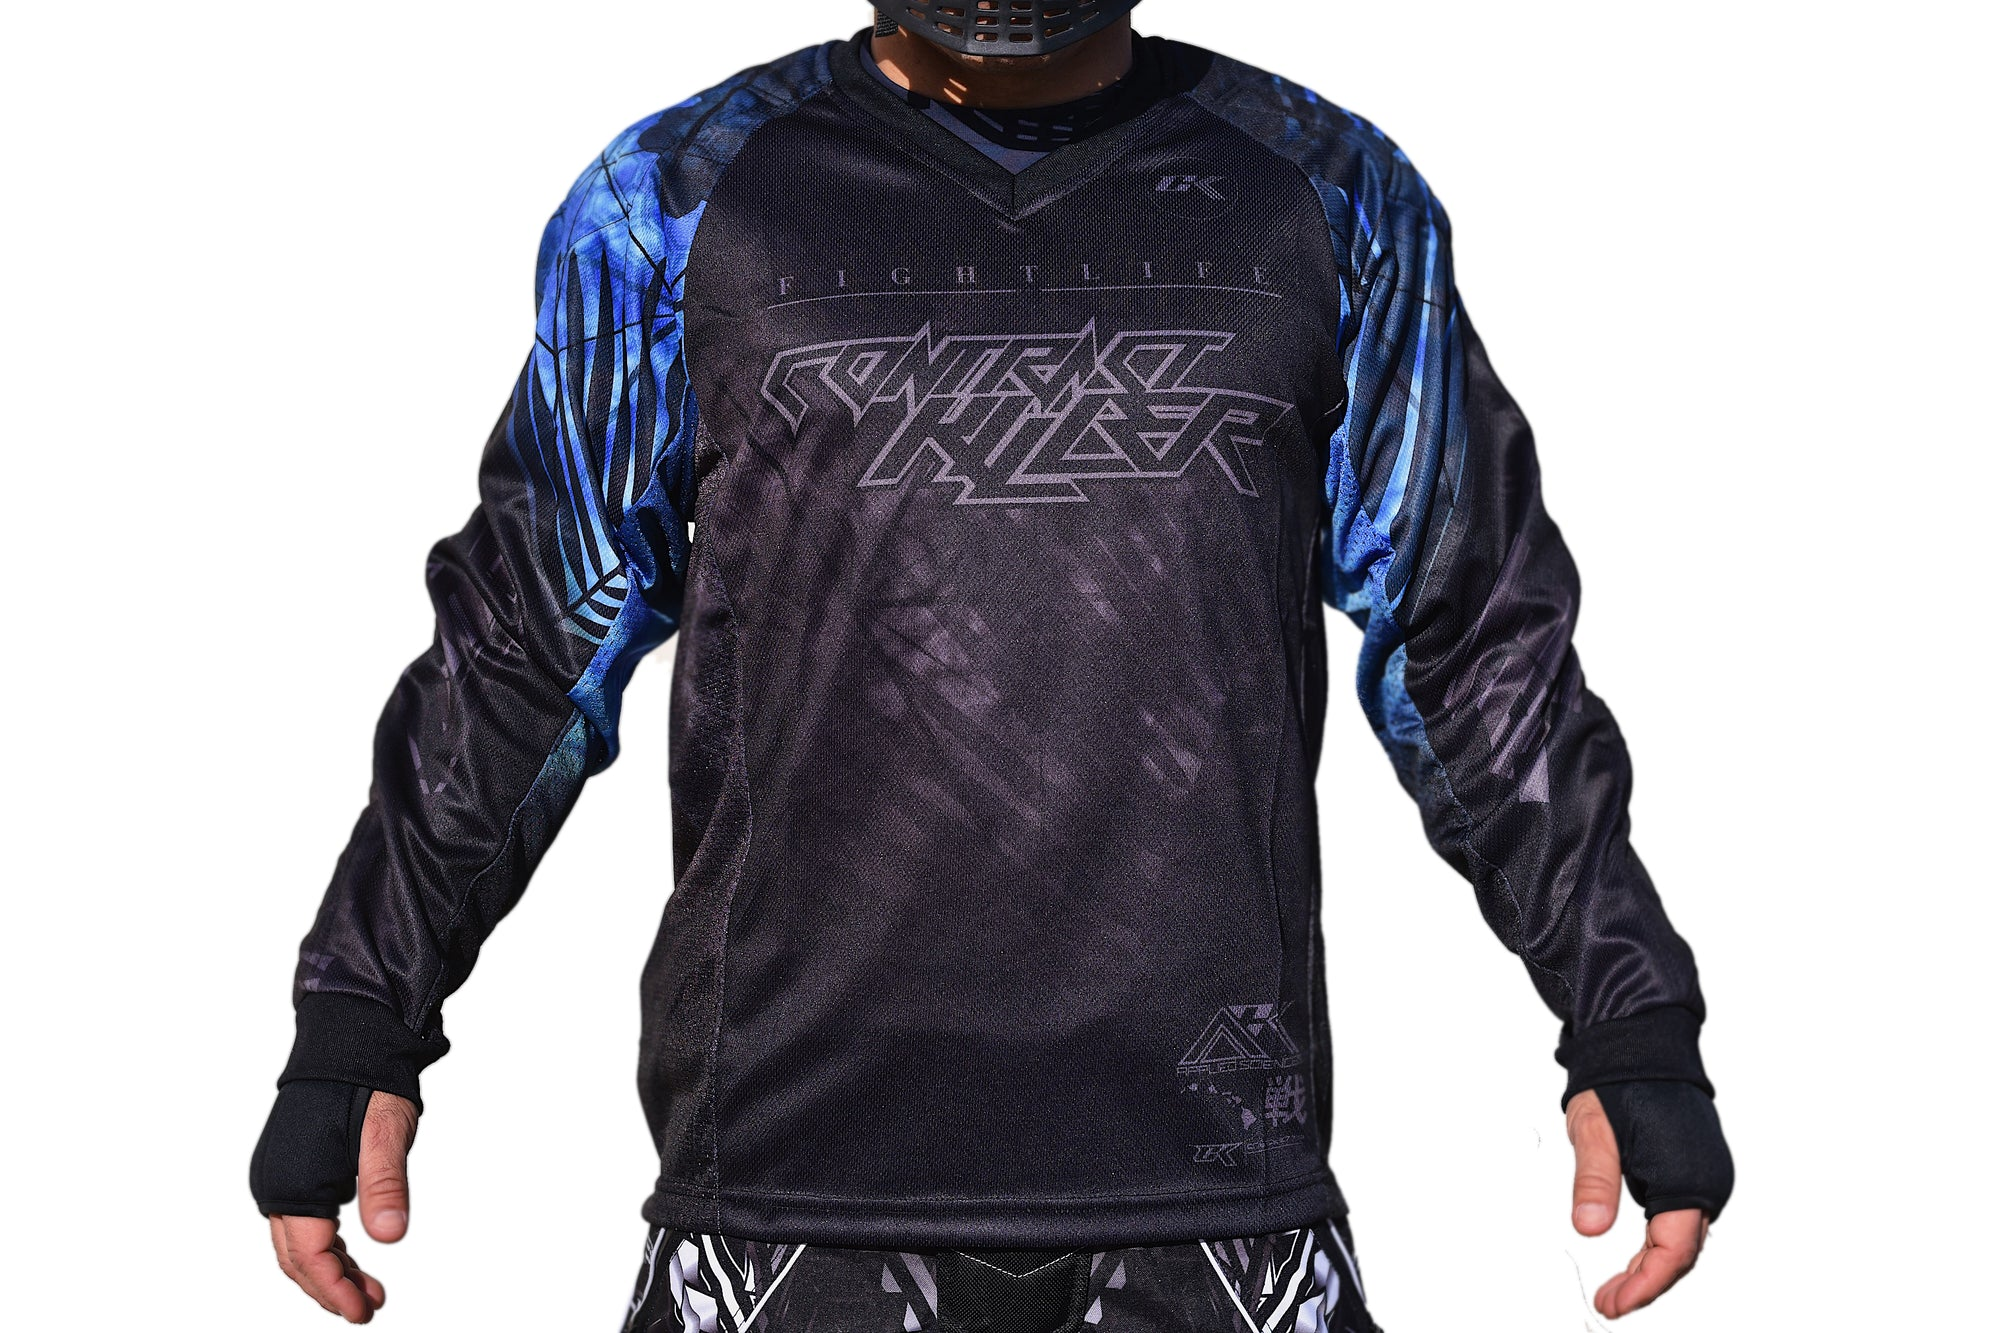 CK CKONGO Paintball Jersey - Blue